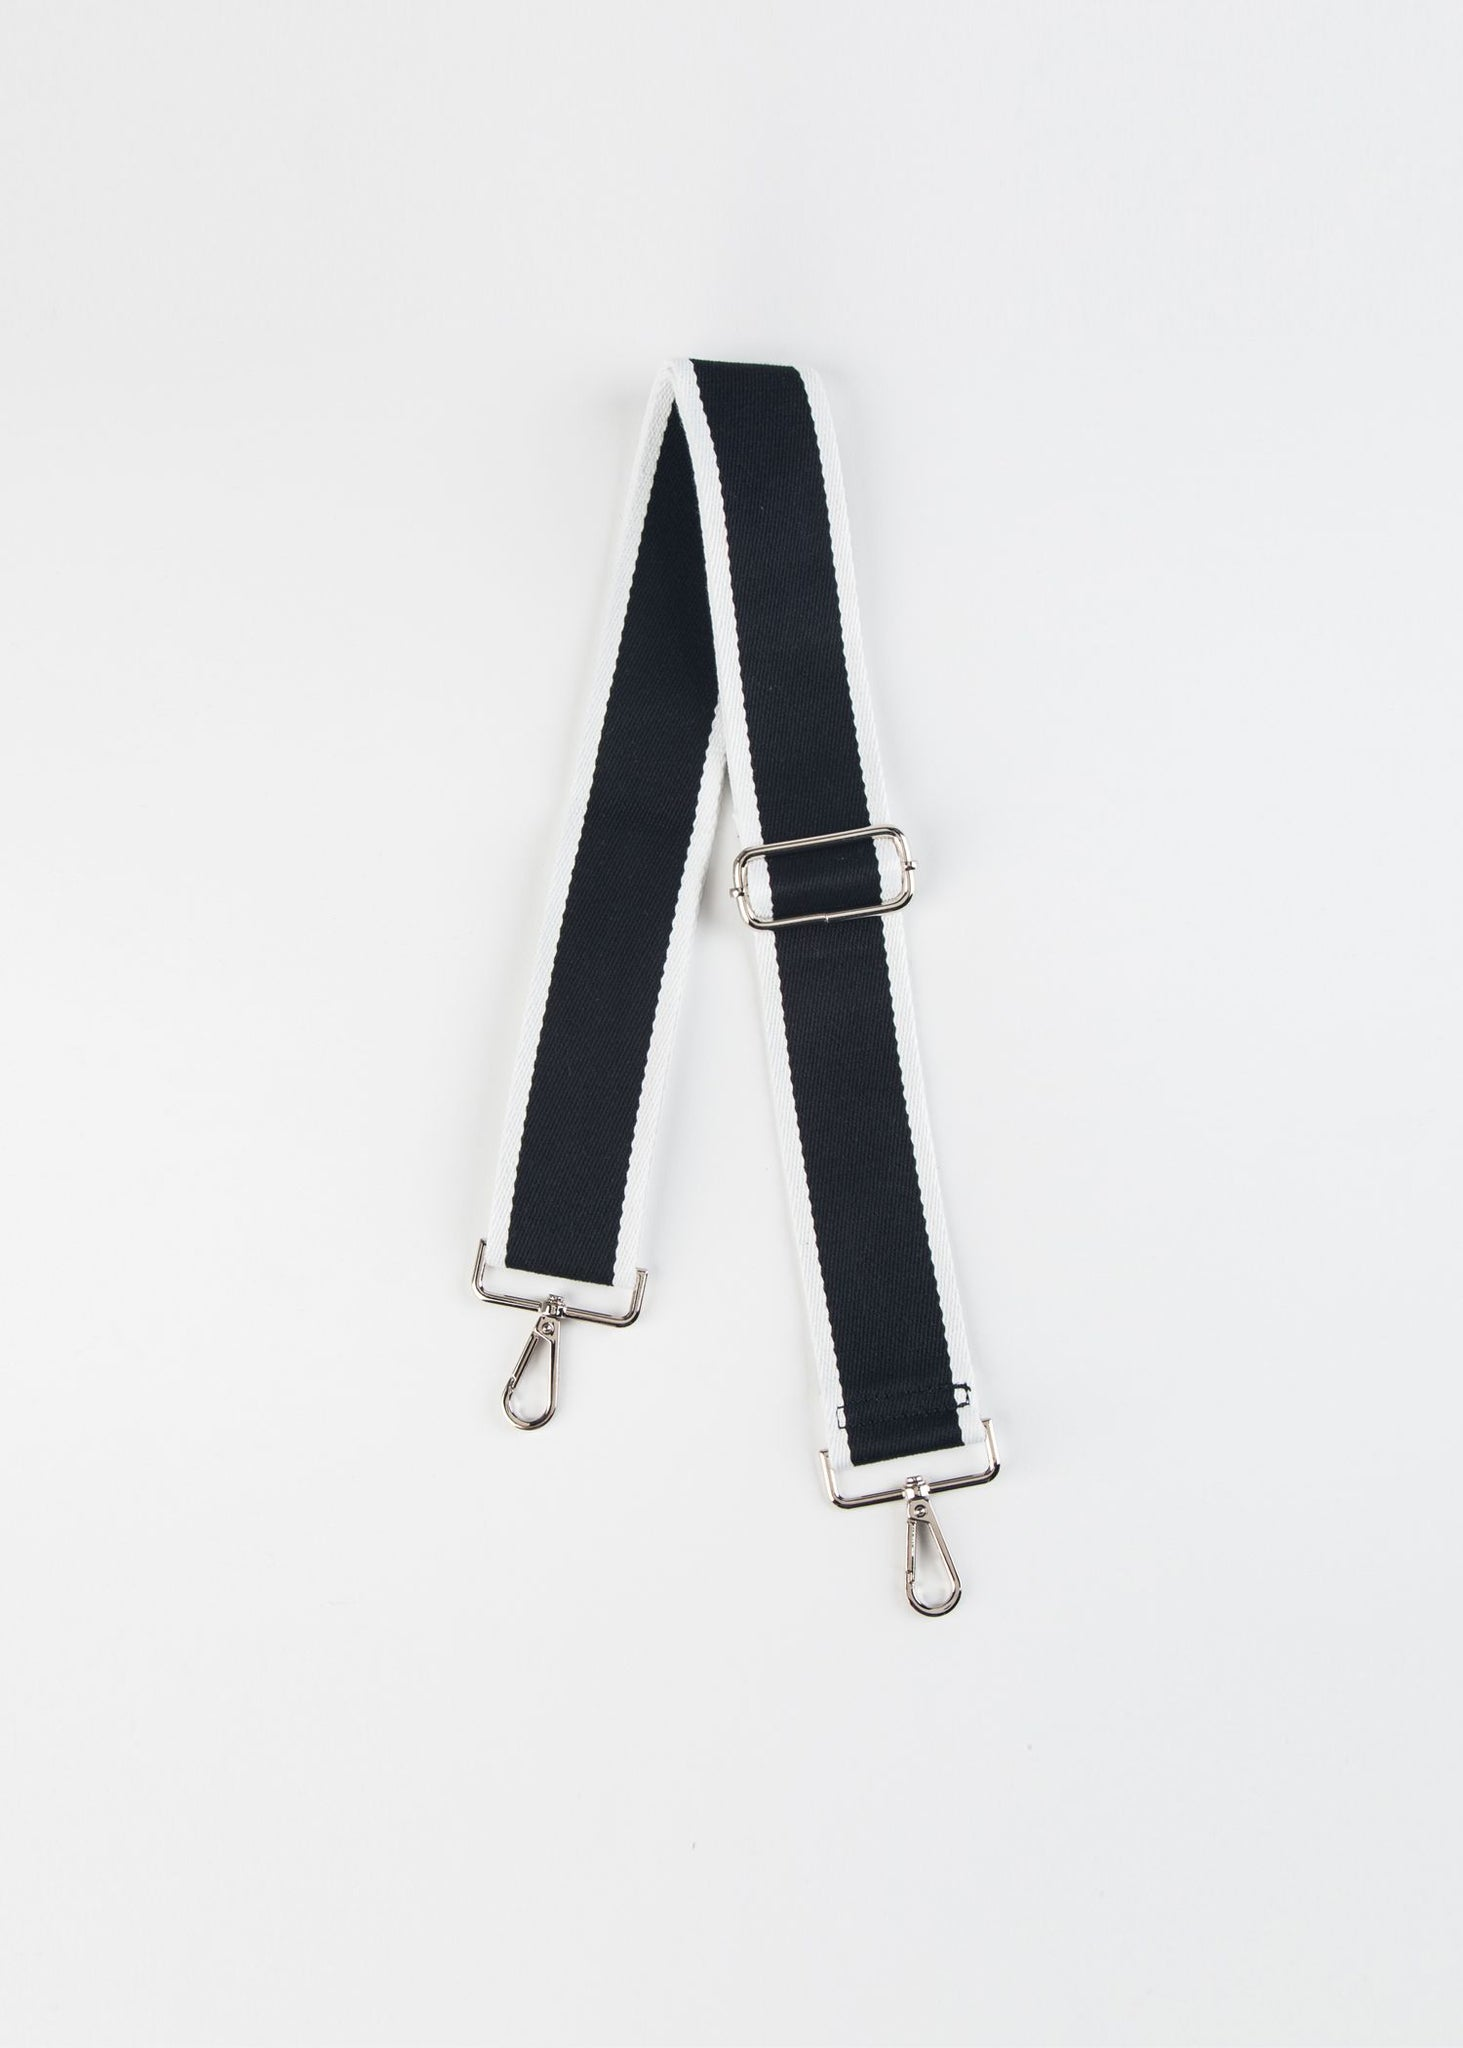 ADJUSTABLE BLACK/WHITE GUITAR STRAP